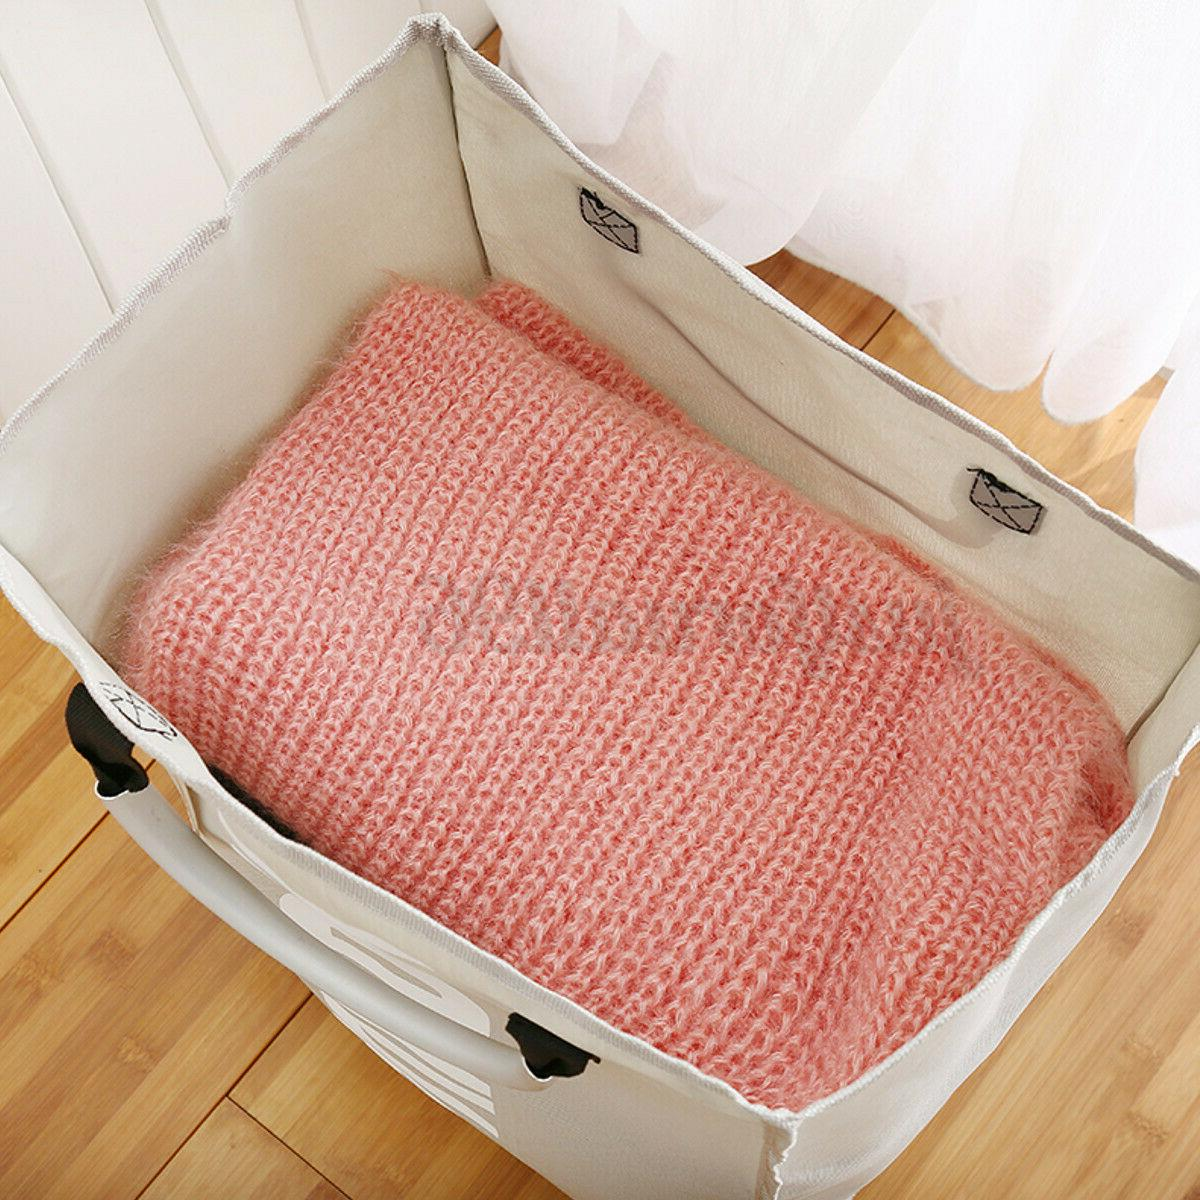 Laundry Collapsible Foldable